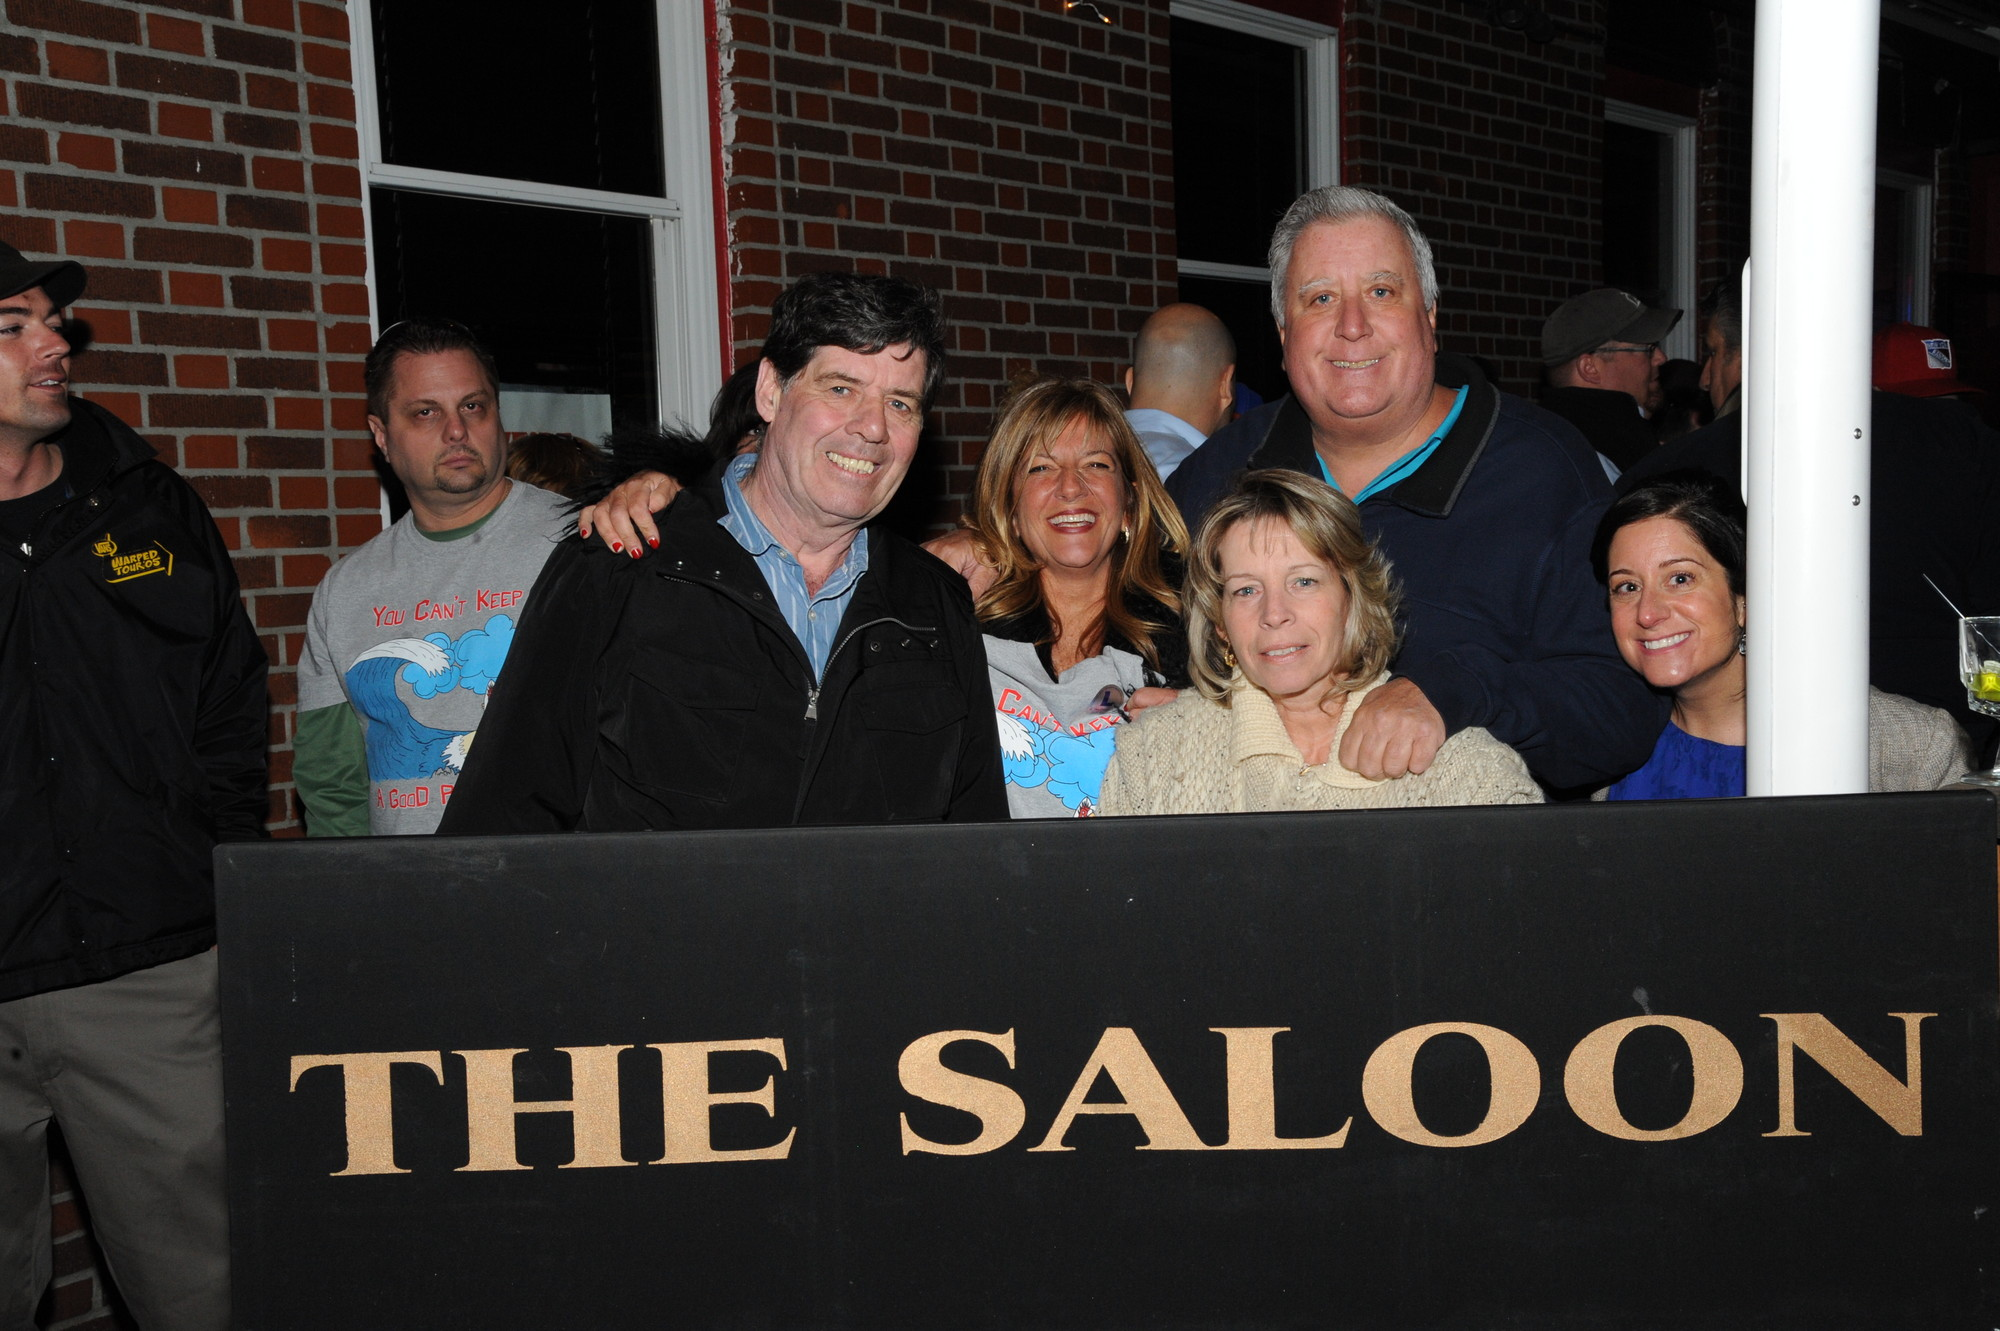 Mike Nolan, Edna Flood, Cathy and Mike Mechow, and Jen Esposito at the Saloon.